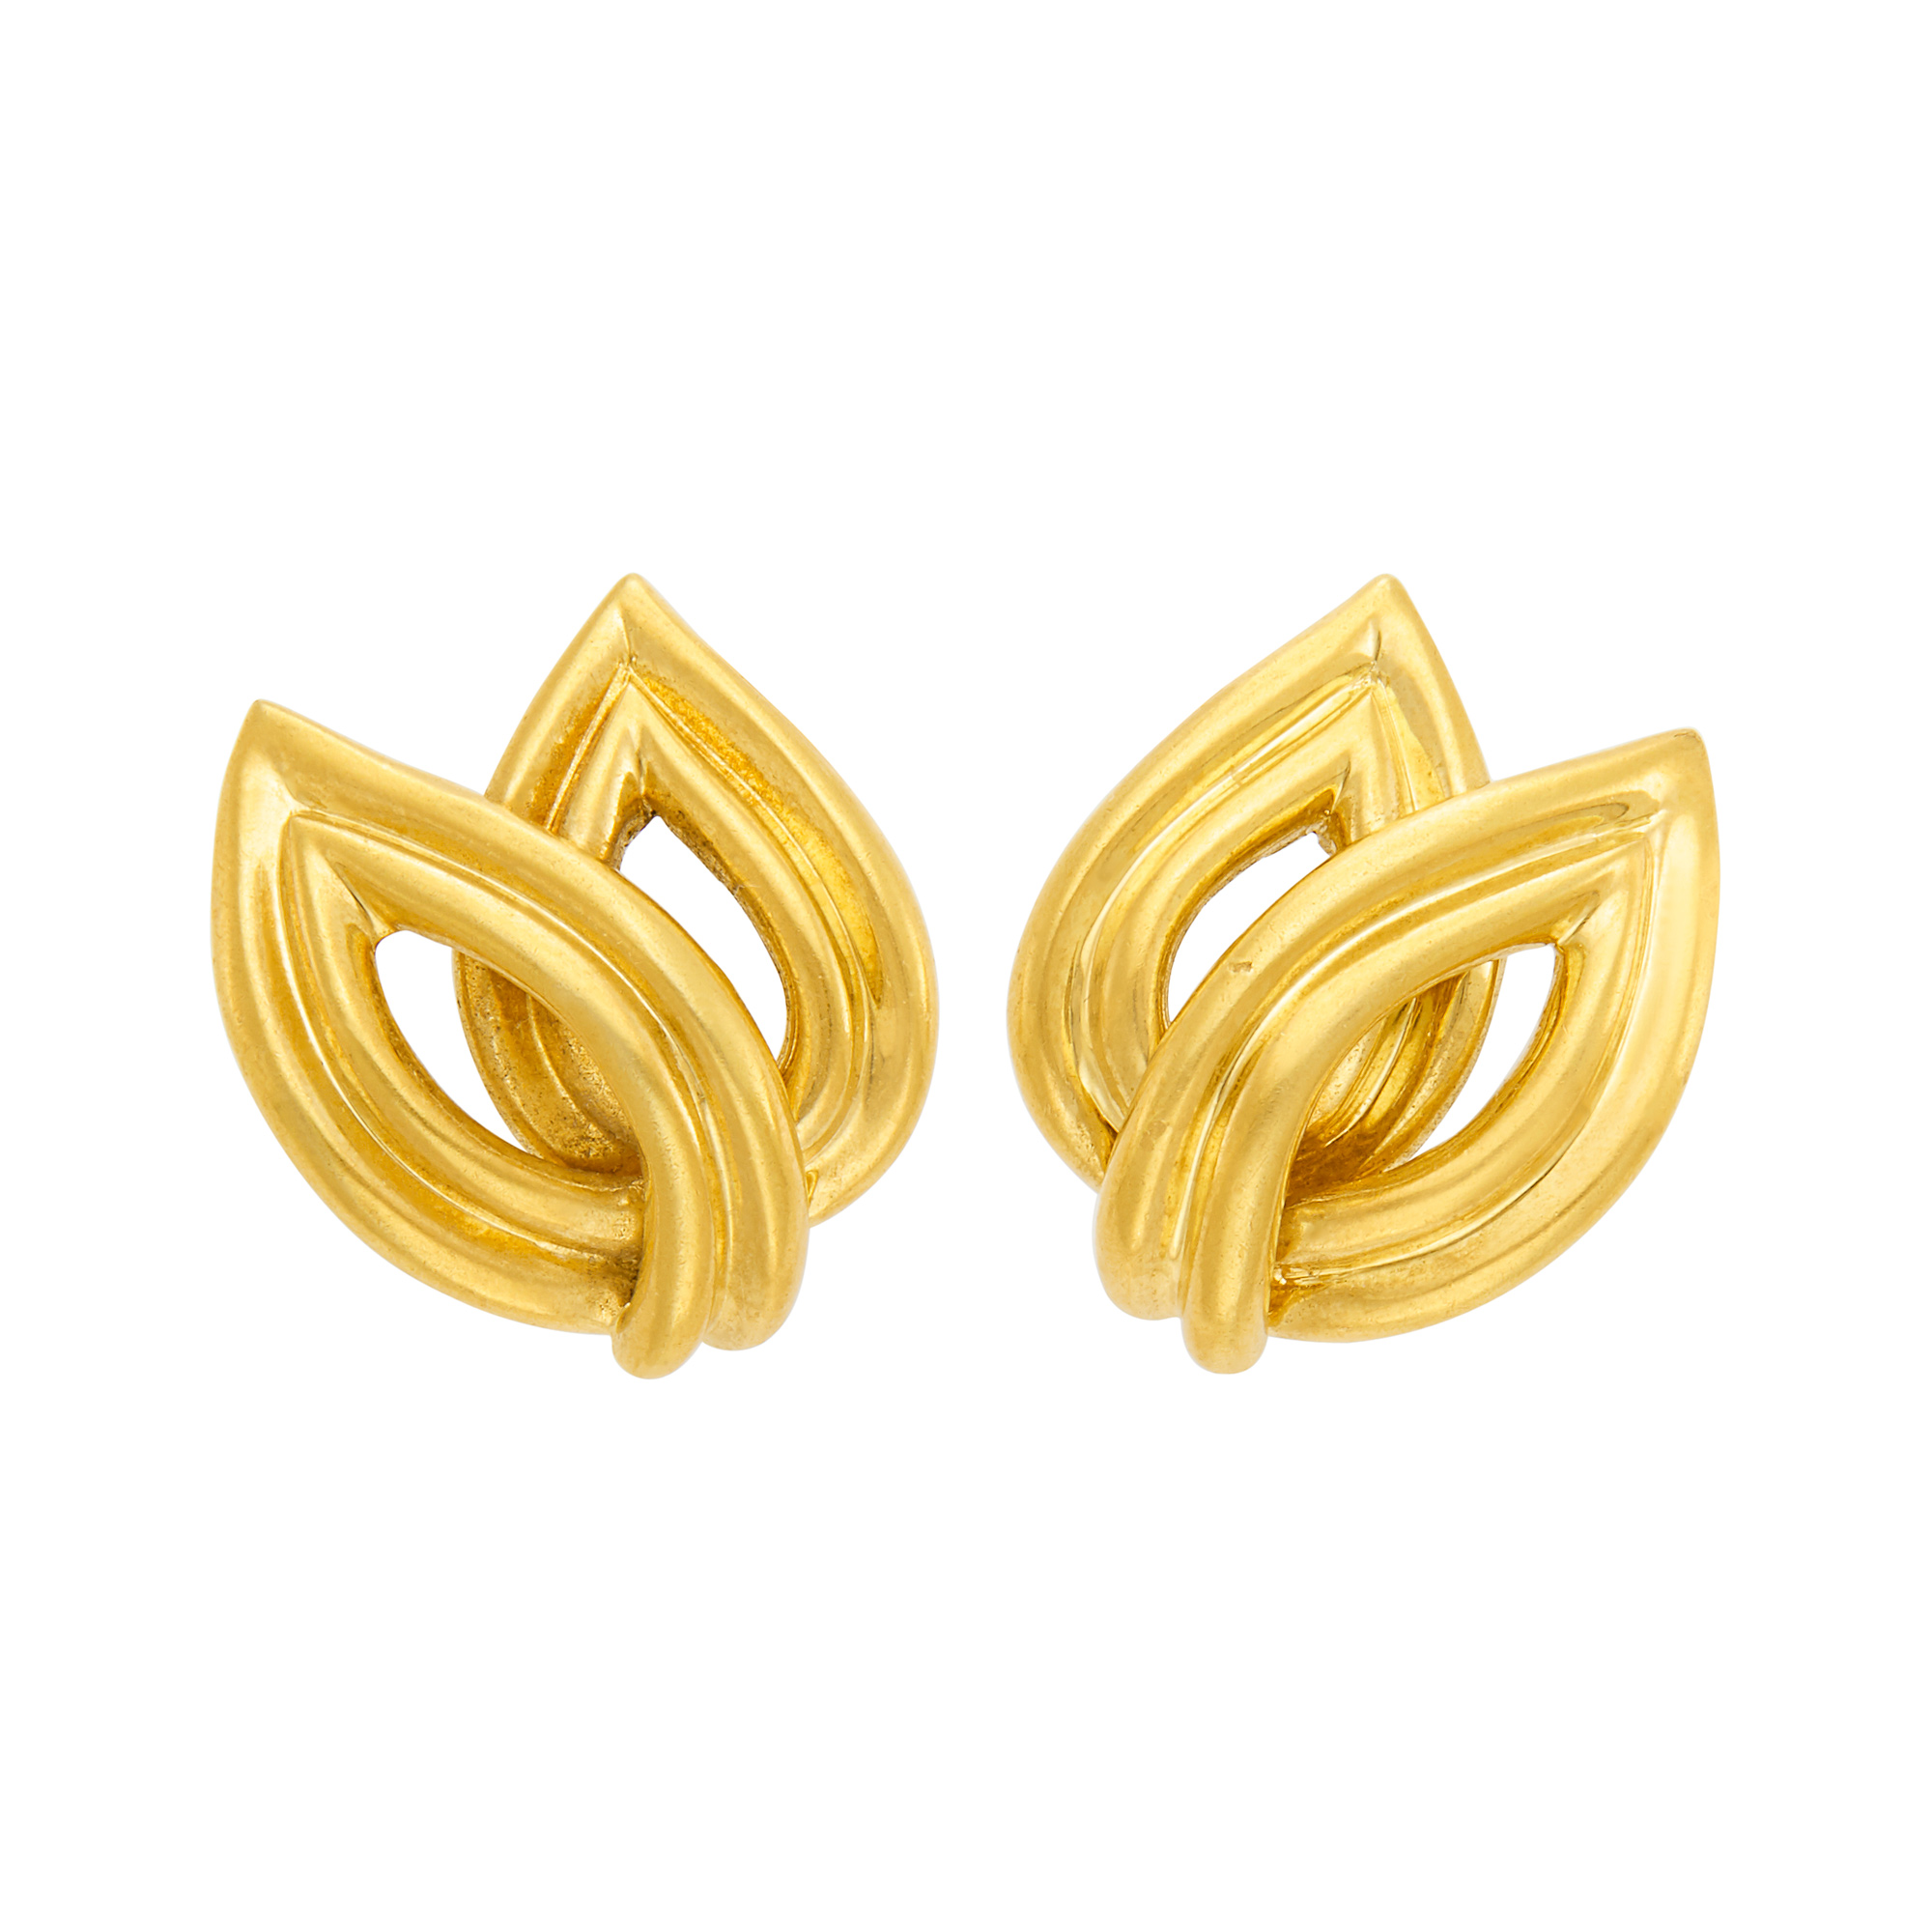 Lot image - Pair of Gold Leaf Earclips, Tiffany & Co.